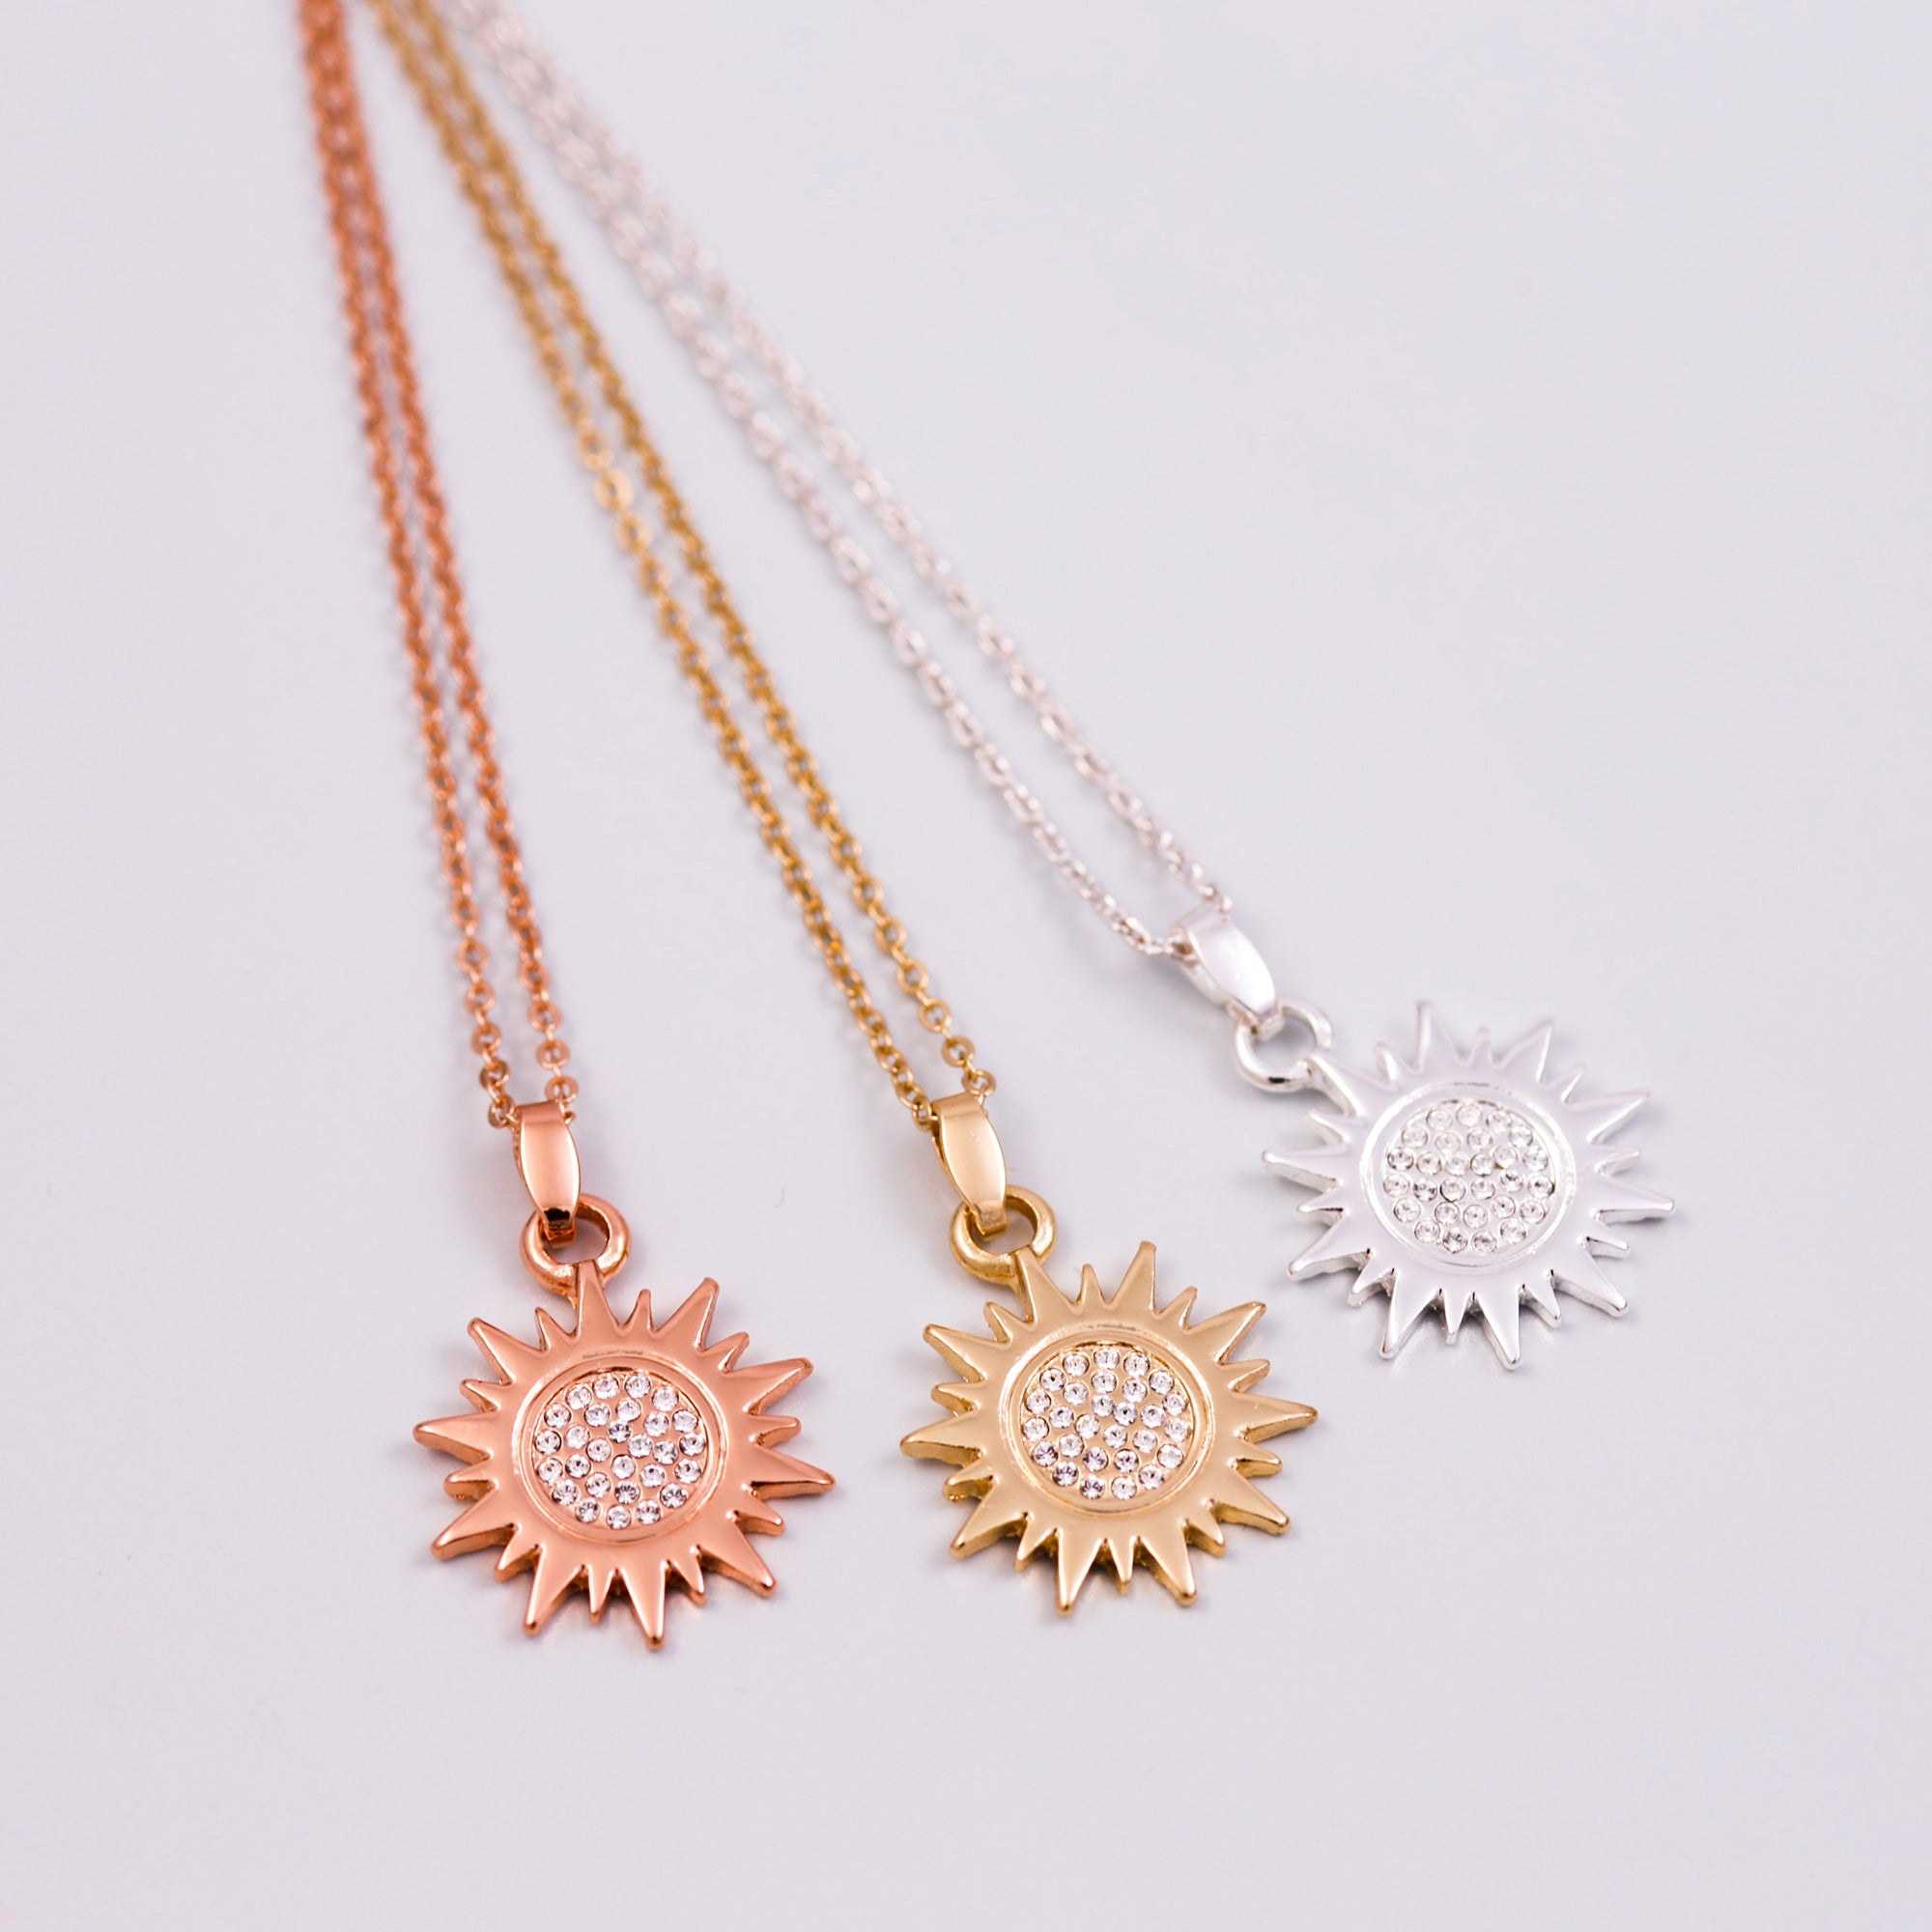 gold sun moon wishes necklacesun chain moongold filled diamond pin pendant necklace opal